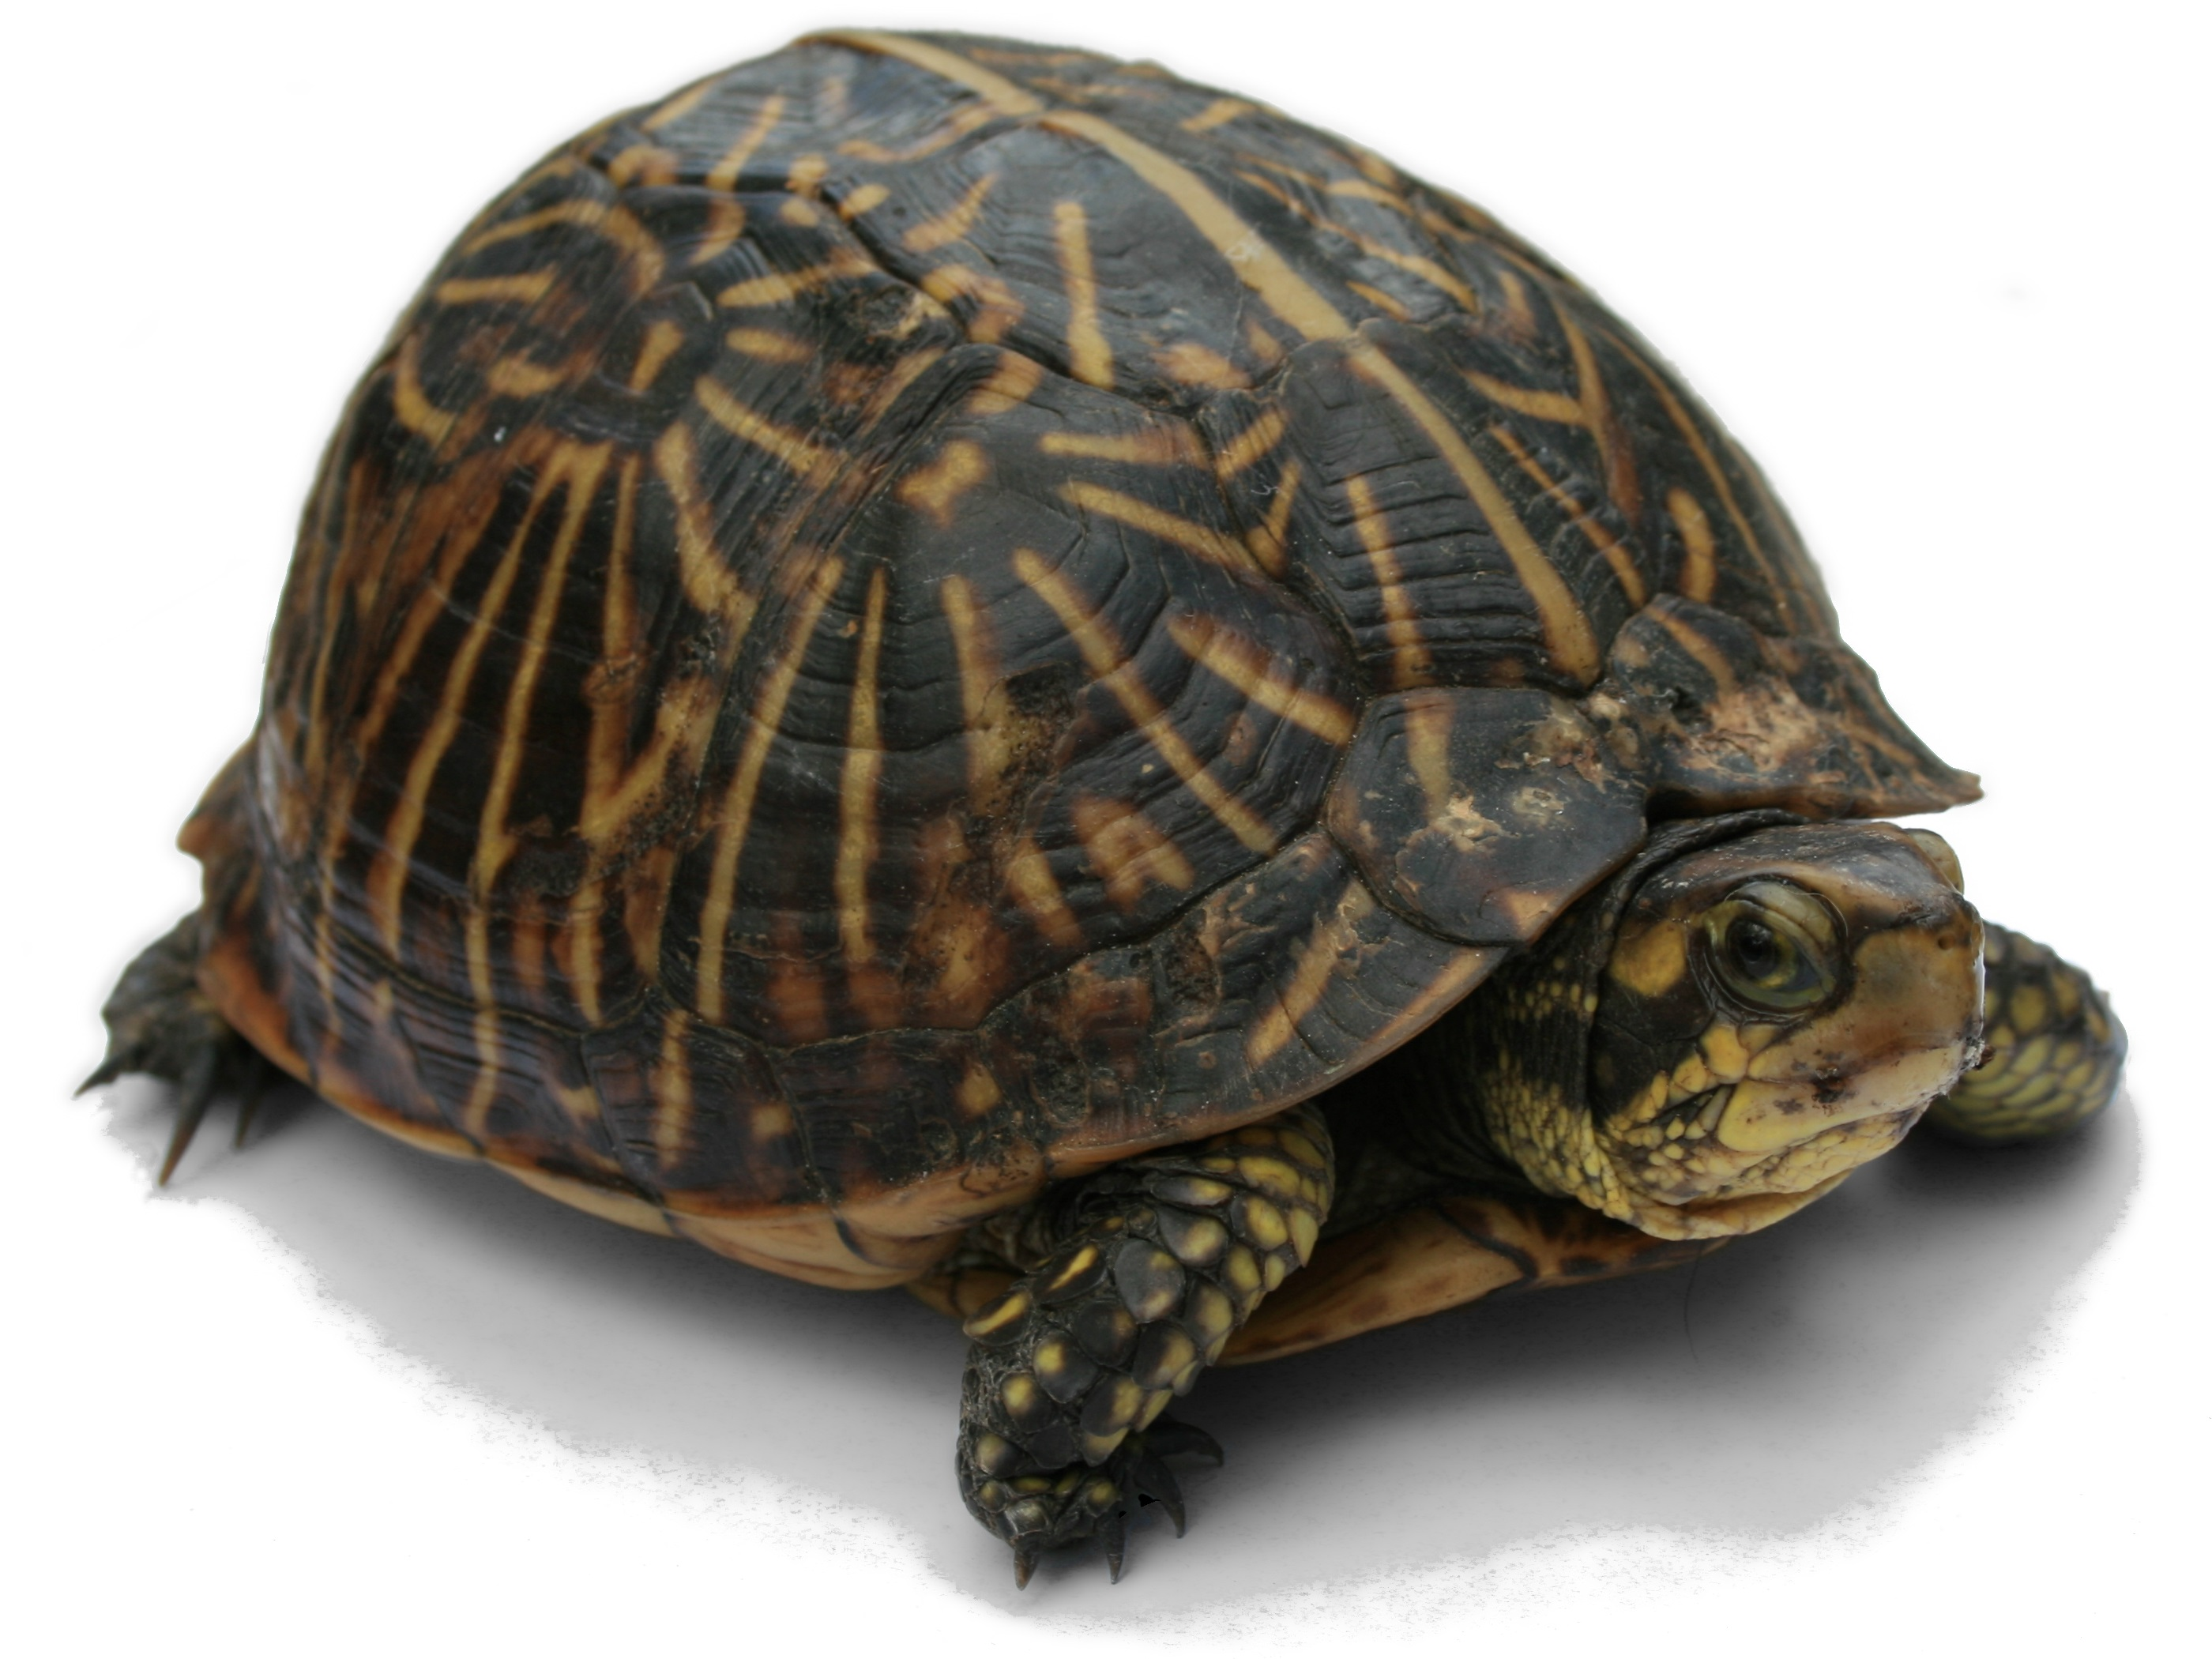 file florida box turtle digon3 re edited     wikimedia